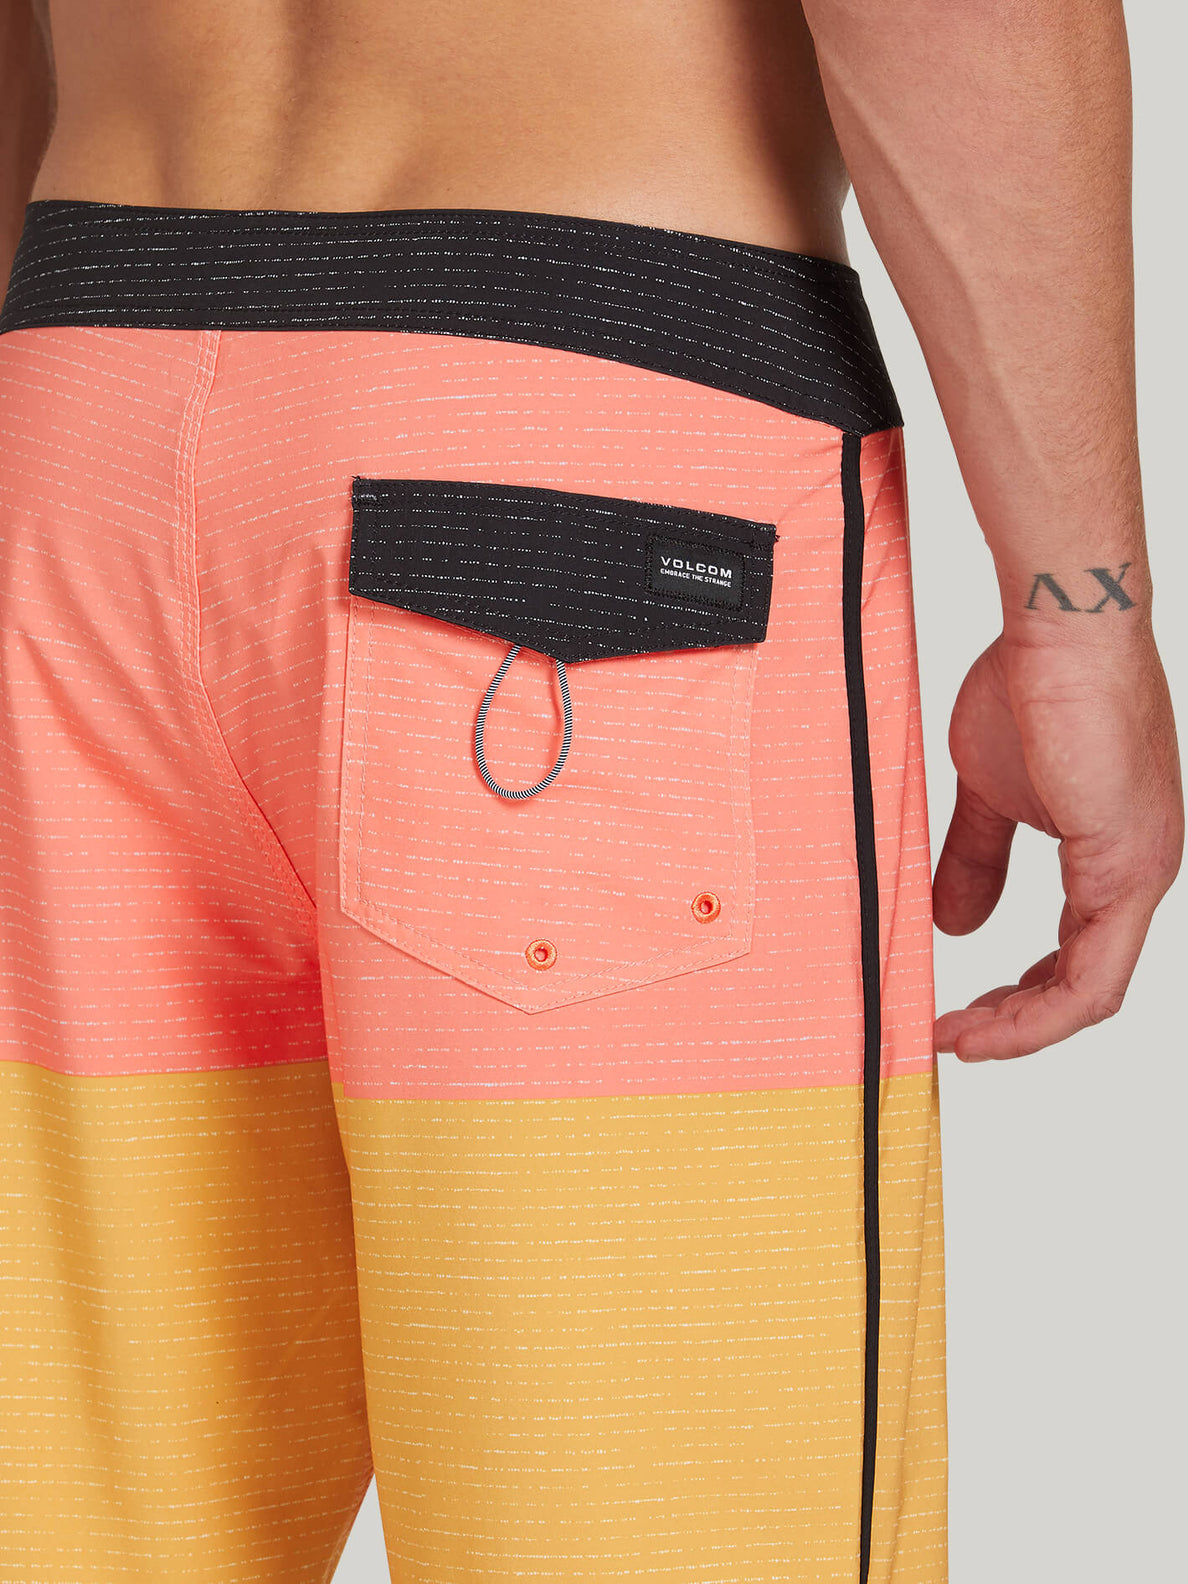 Lido Scallop Mod-Tech Trunks - Mineral Yellow (A0822015_MYL) [4]